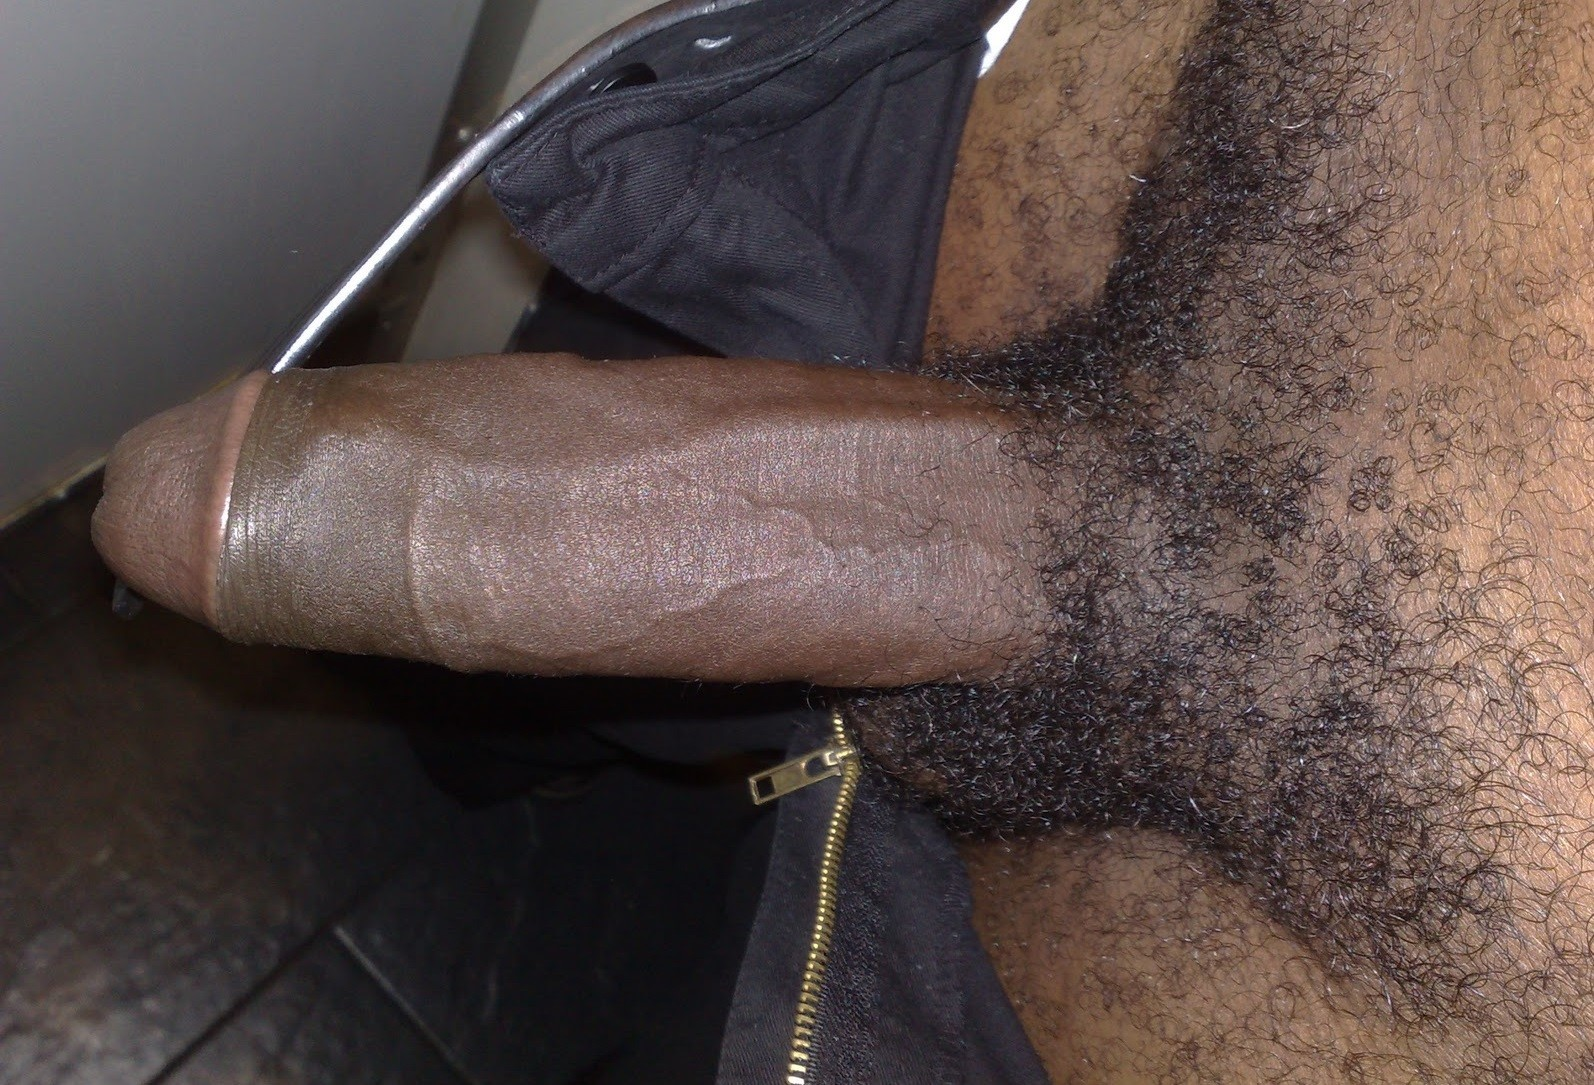 Big Black Dicks, Photo Album By Mrorgasum